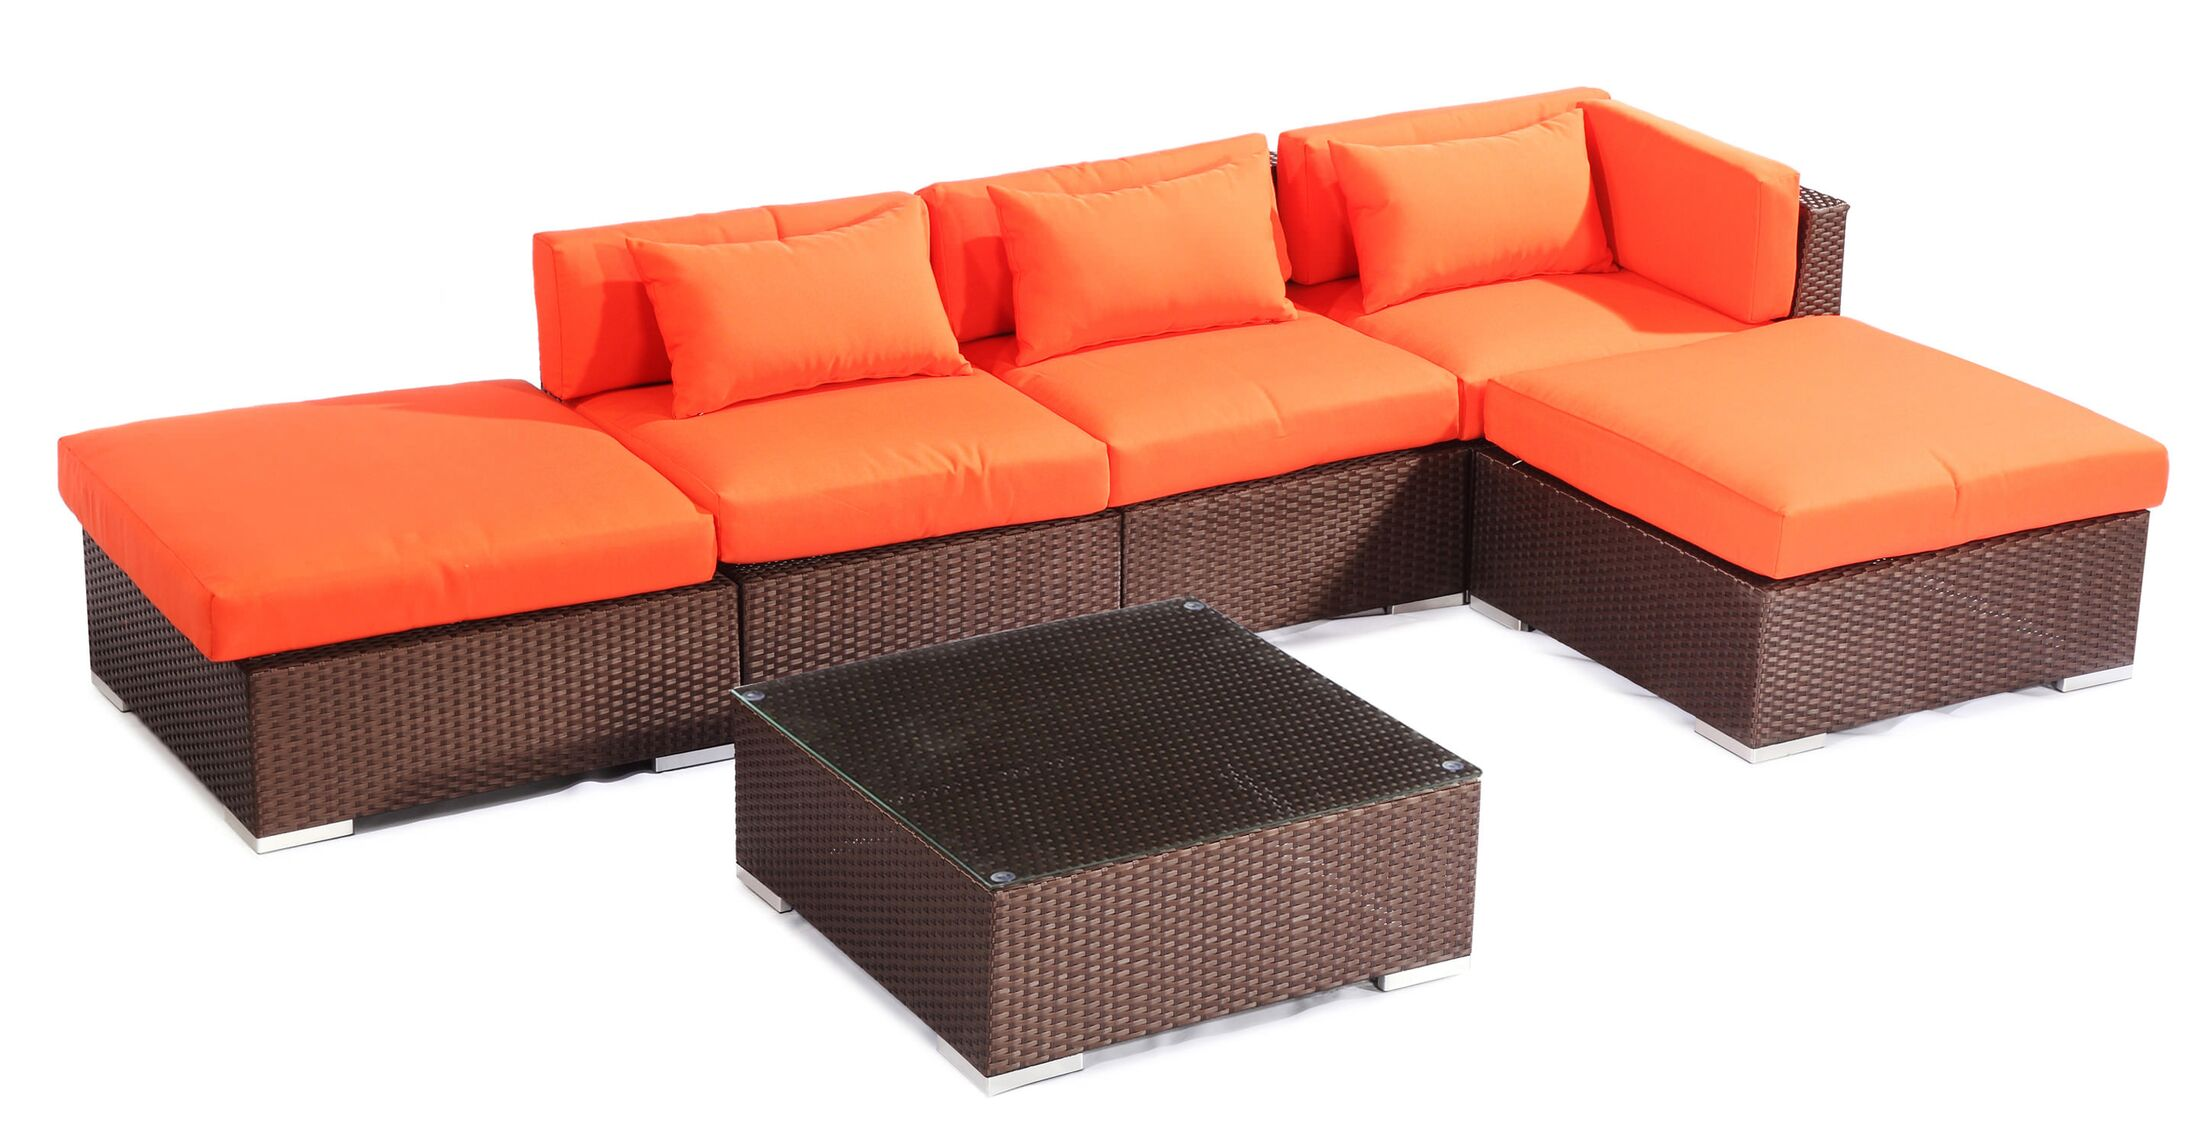 Poipu 6 Piece Sectional Set with Cushions Fabric: Orange, Color: Brown